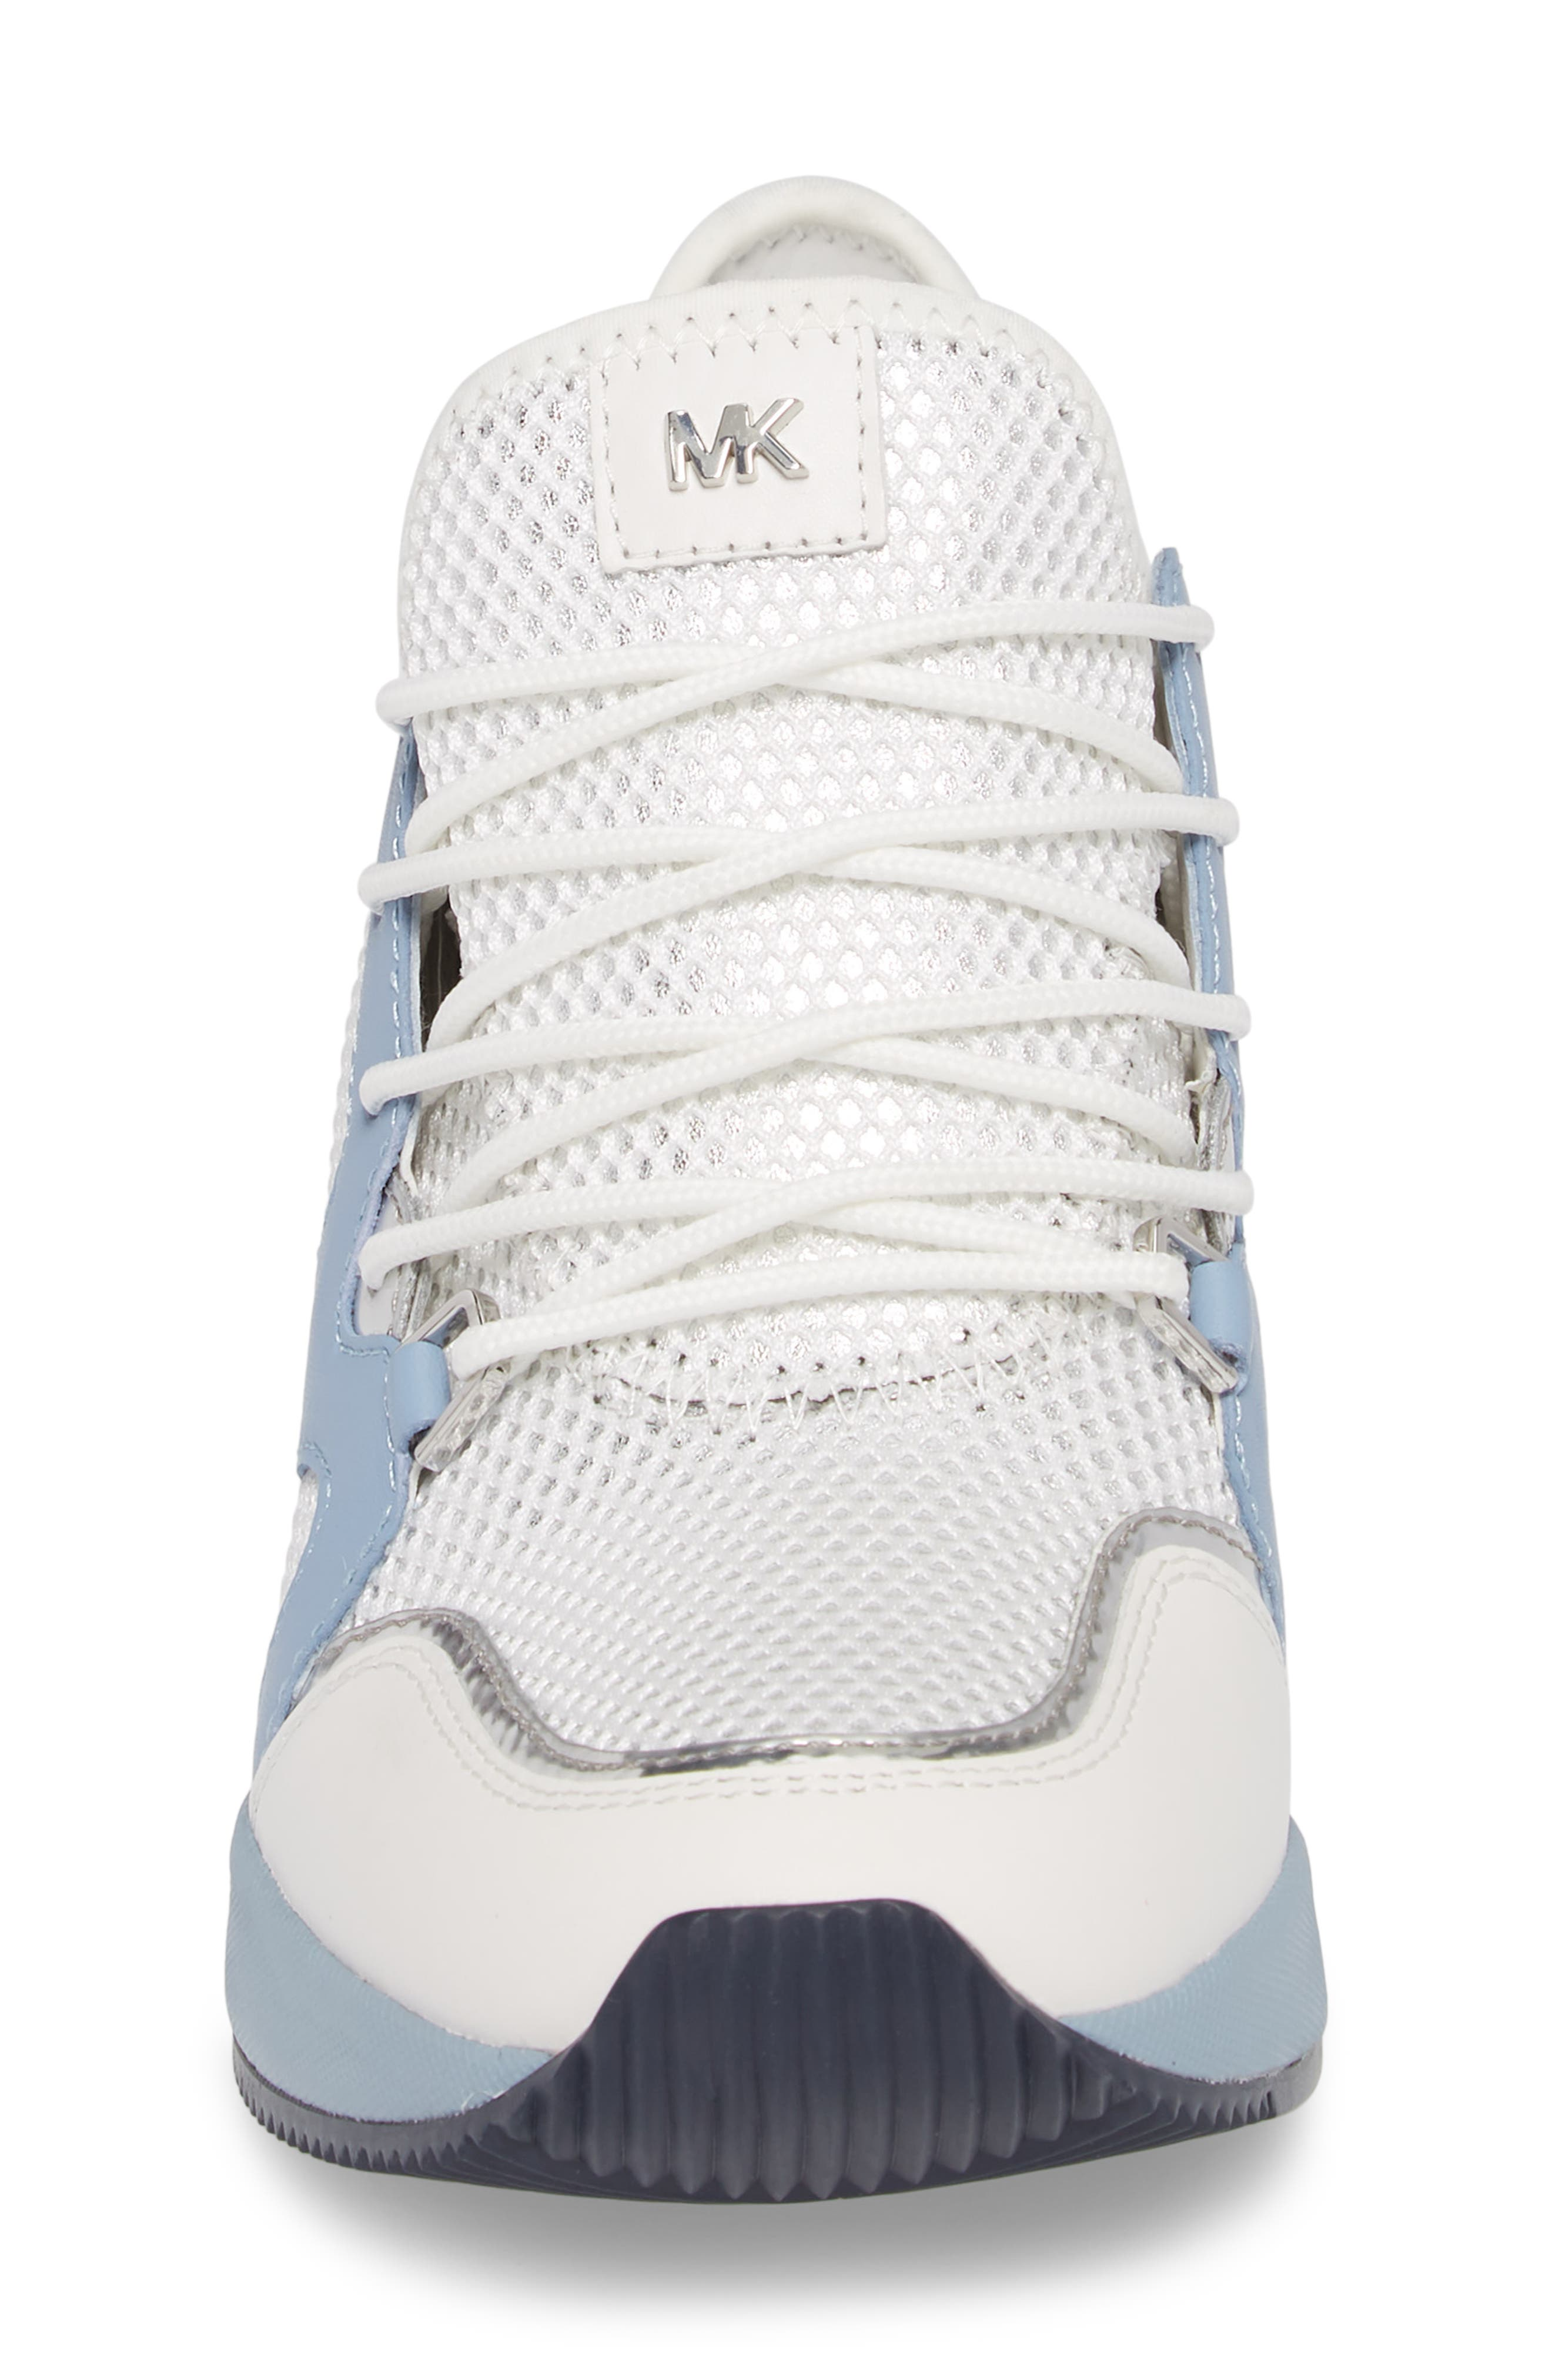 Scout Wedge Sneaker,                             Alternate thumbnail 4, color,                             Optic White/Blue